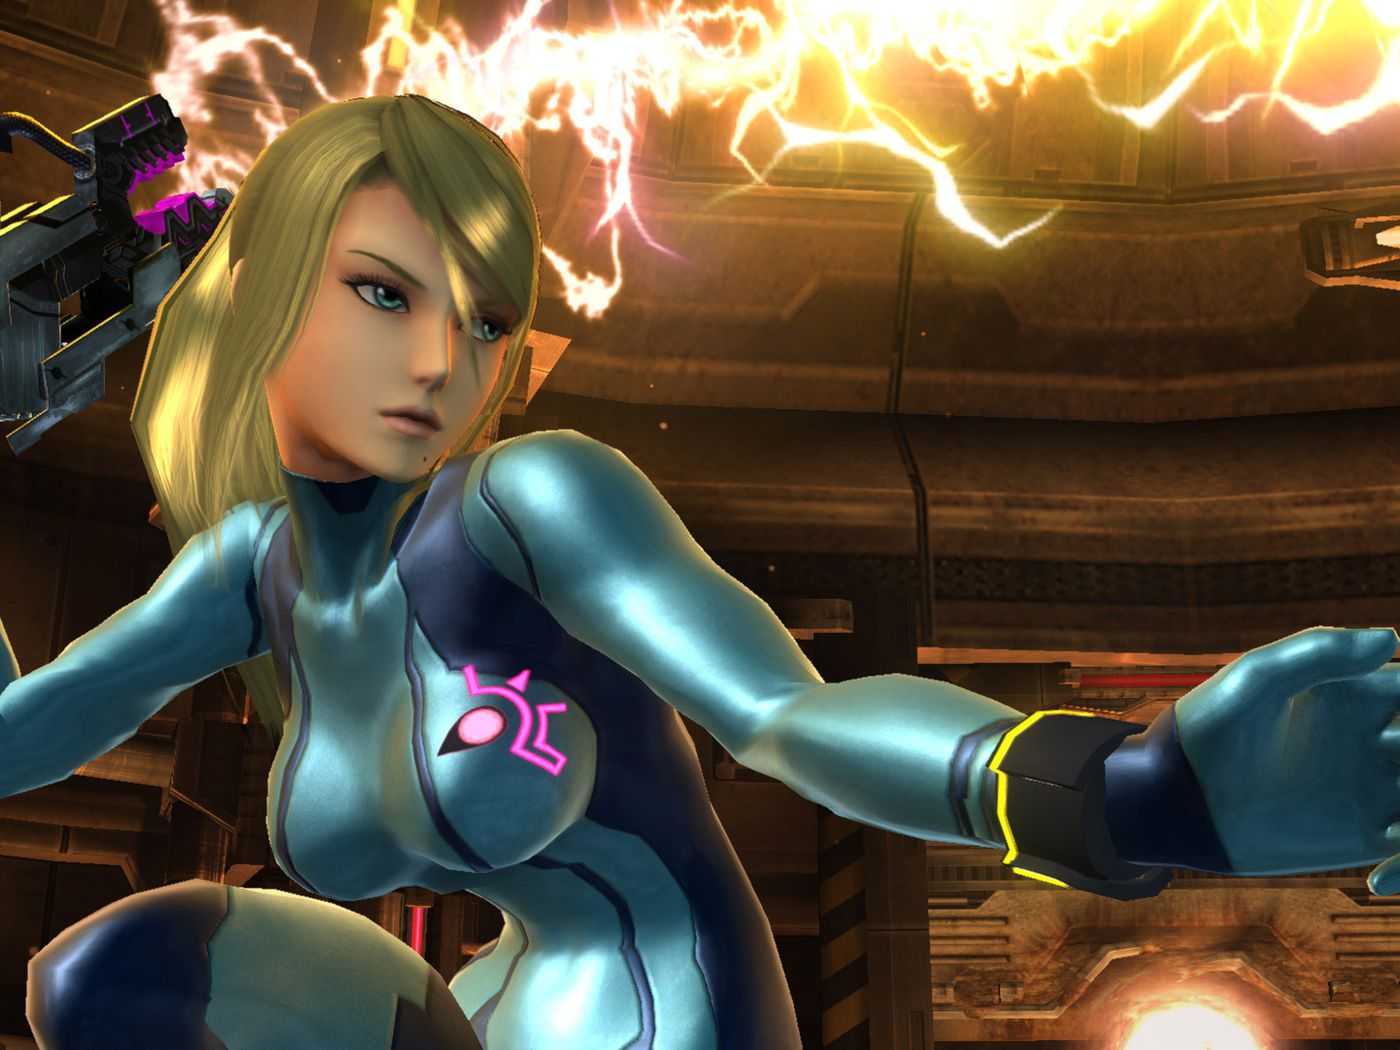 Sheik Yoshi And Zero Suit Samus Join The Roster In Super Smash